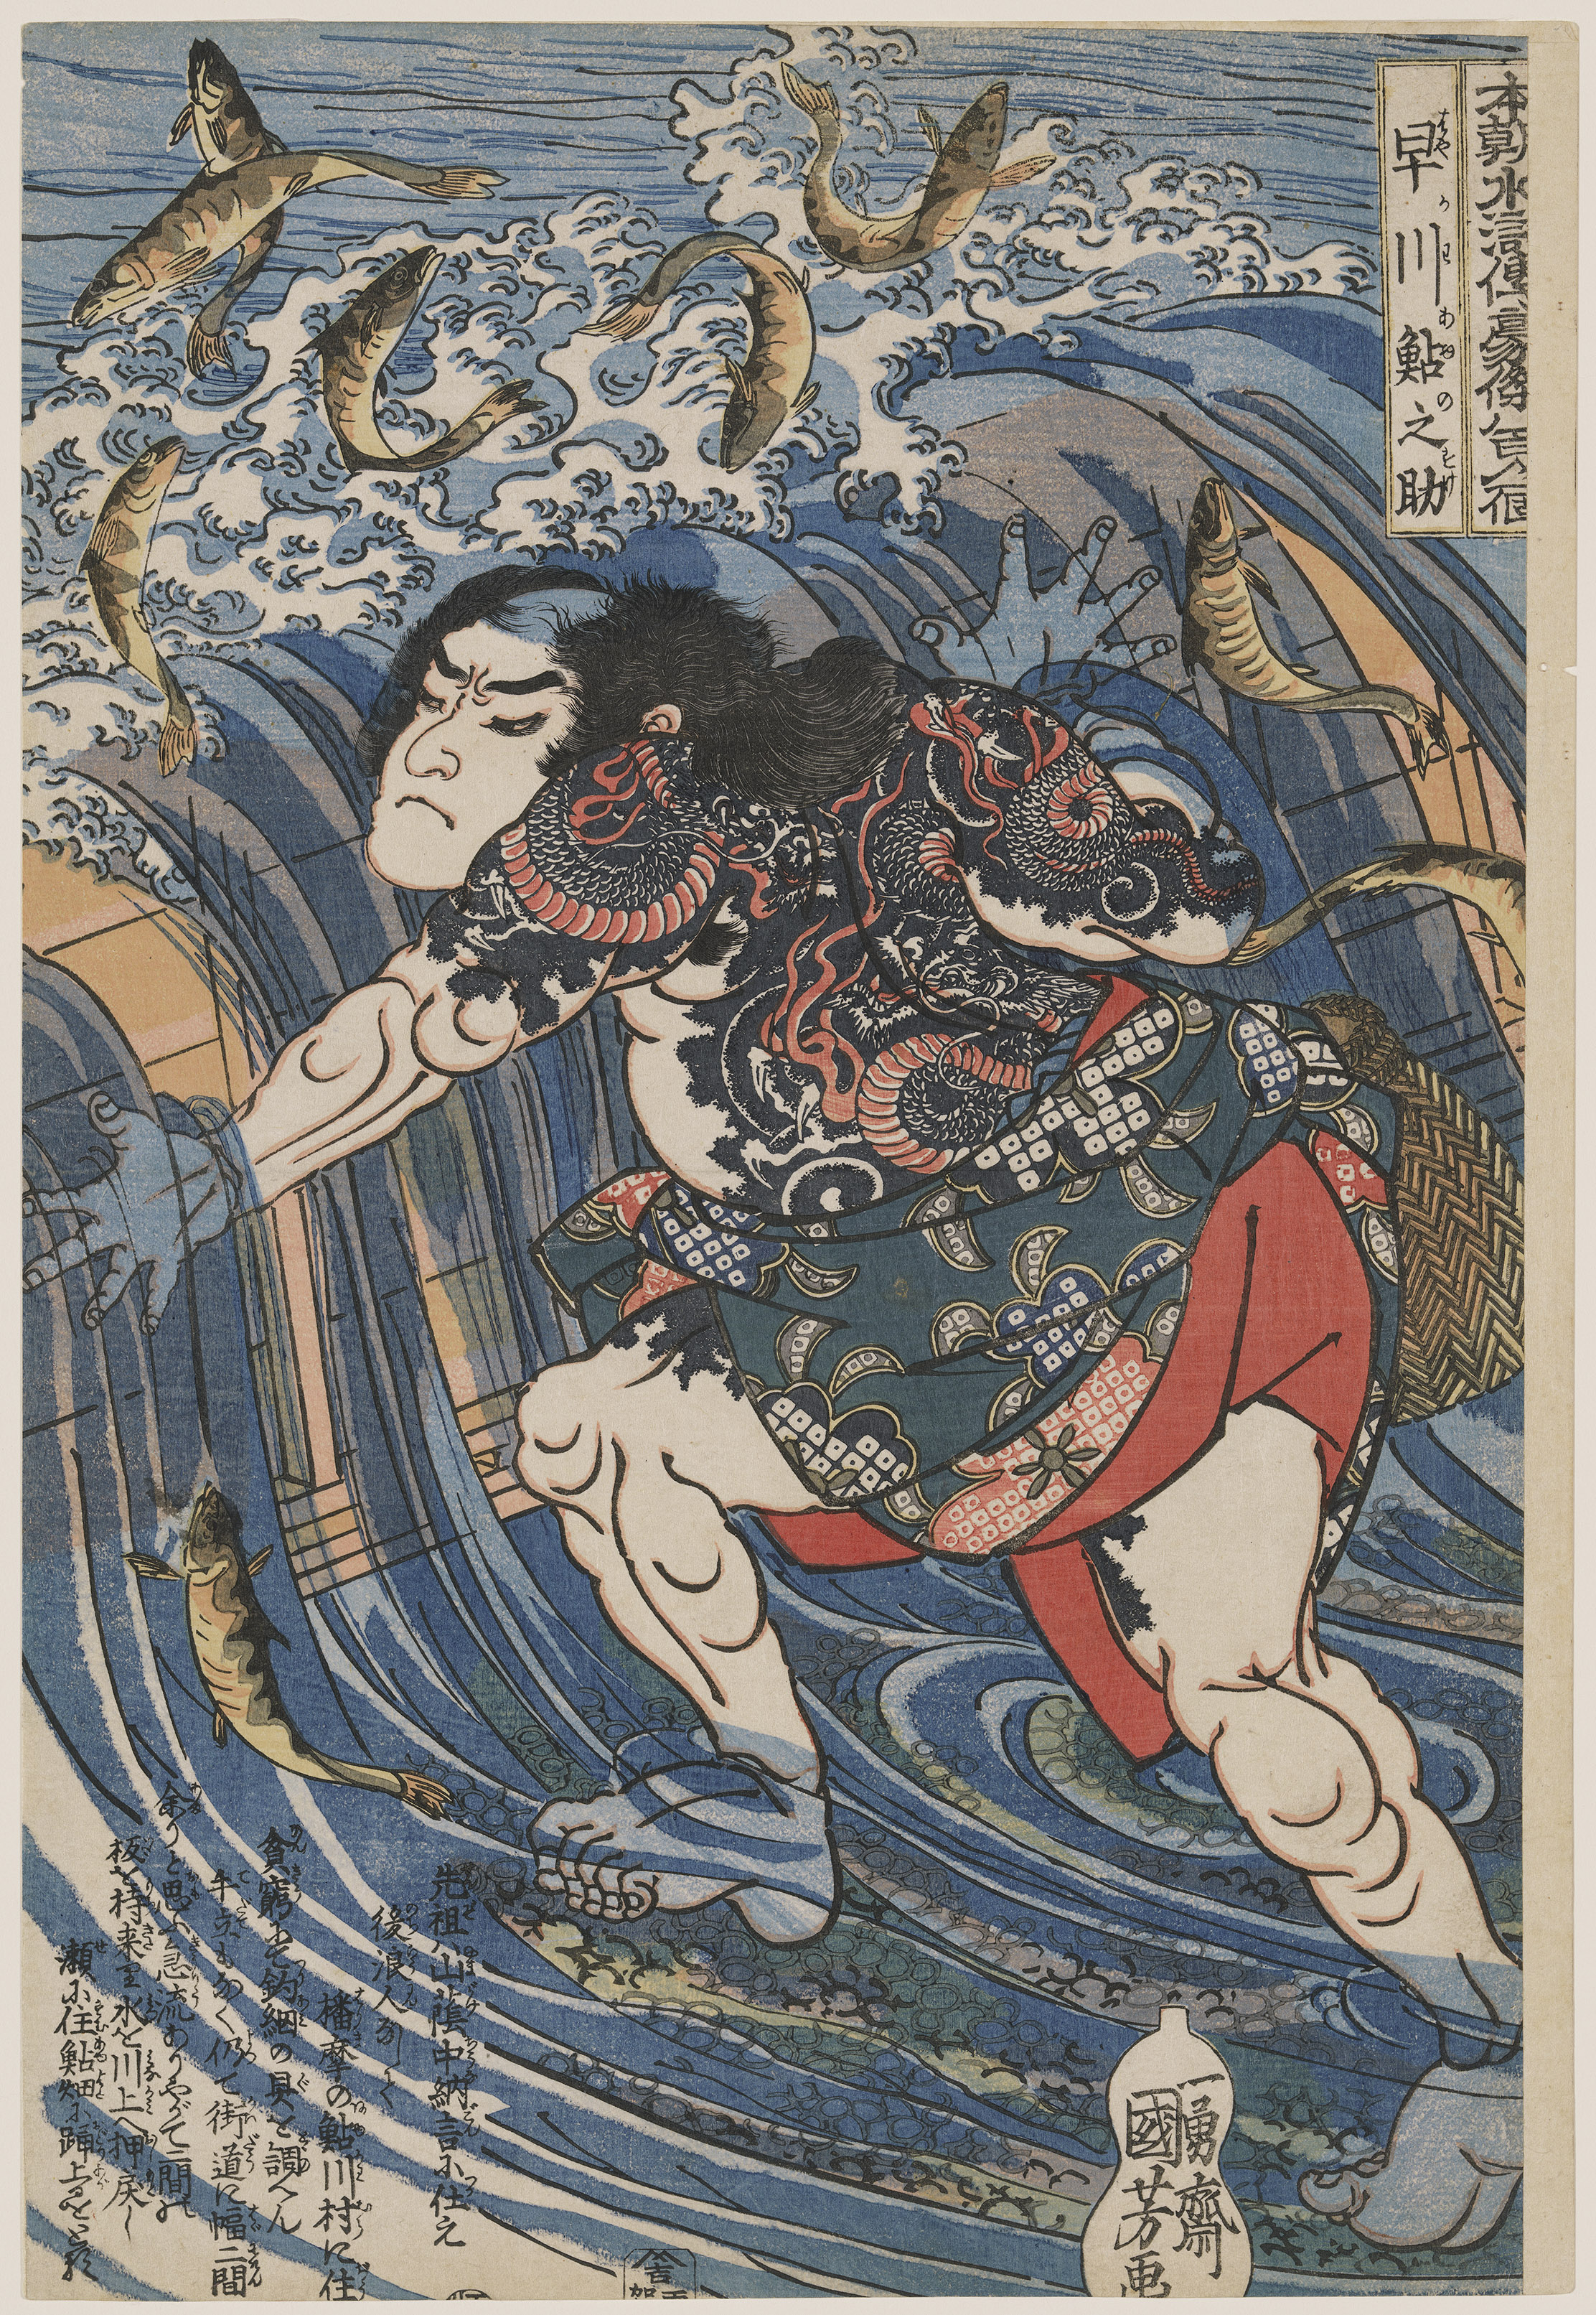 """""""Hayakawa Ayunosuke,"""" from the series """"800 Hundred Heroes of the Japanese Water Margin"""" by Utagawa Kuniyoshi, c. 1830. The historic Japanese figure is shown here with a dragon-themed bodysuit tattoo, which the actual Hayakawa certainly did not have. ©<a href=""""http://www.mfa.org/"""">Museum of Fine Arts, Boston</a>."""